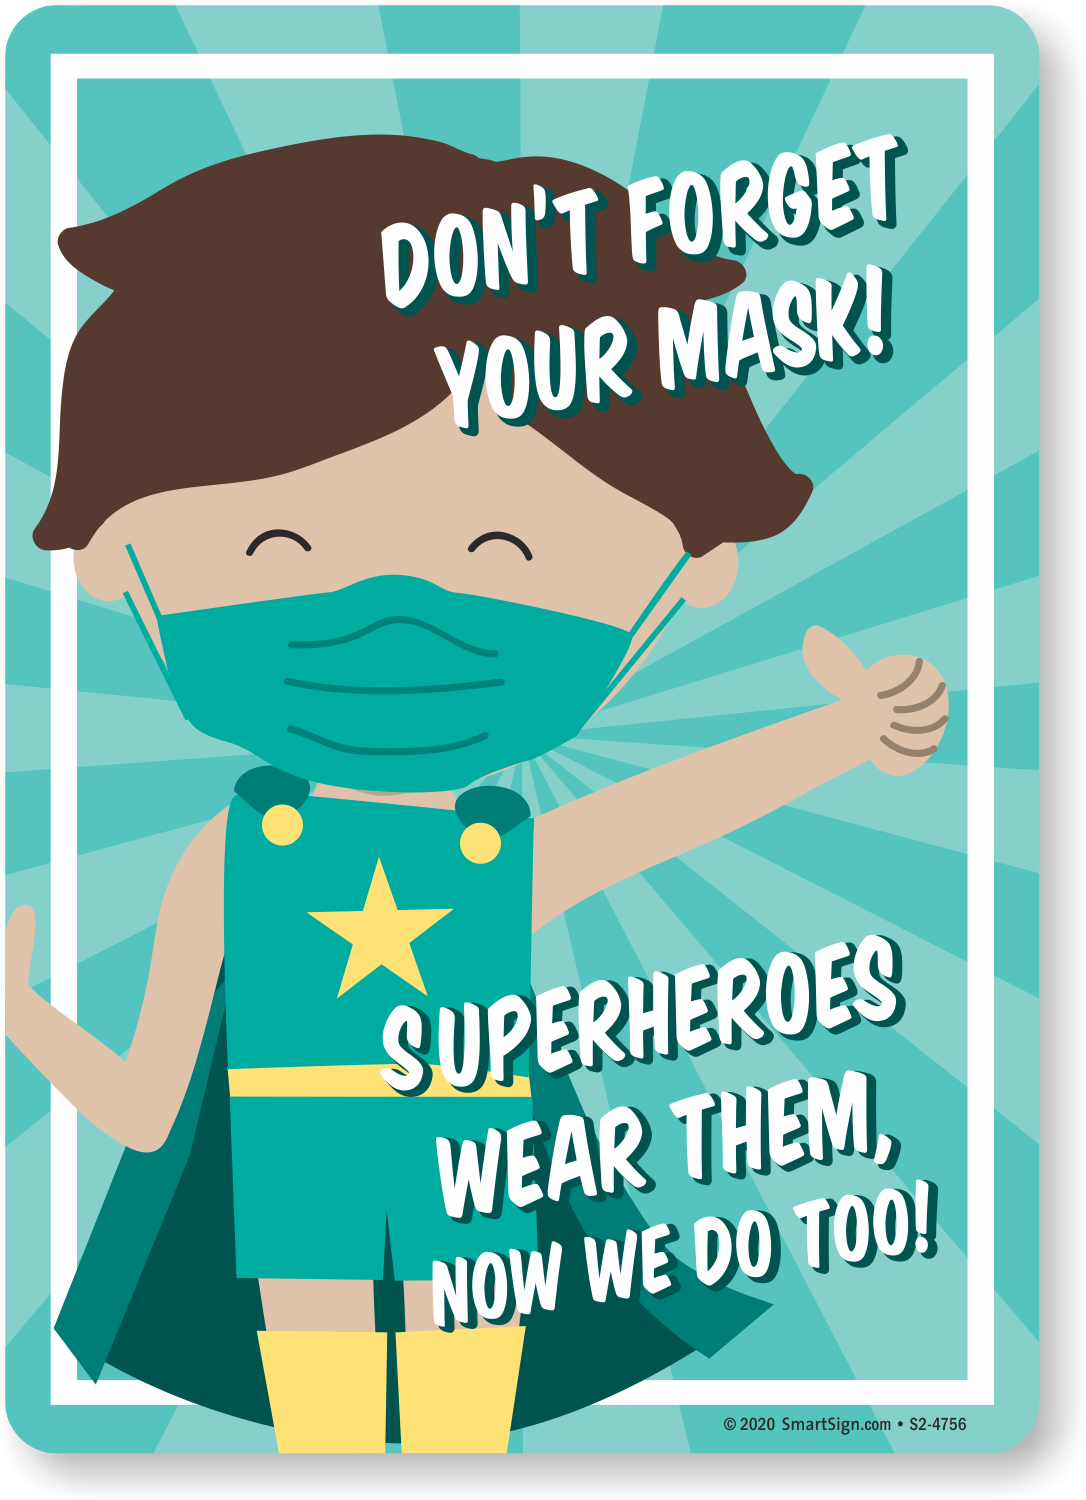 Don't Forget Your Mask: Superheroes Wear Them, Now We Do Too (Hero Boy) -  S2-4756 - from MySafetySign.com, SKU: S2-4756